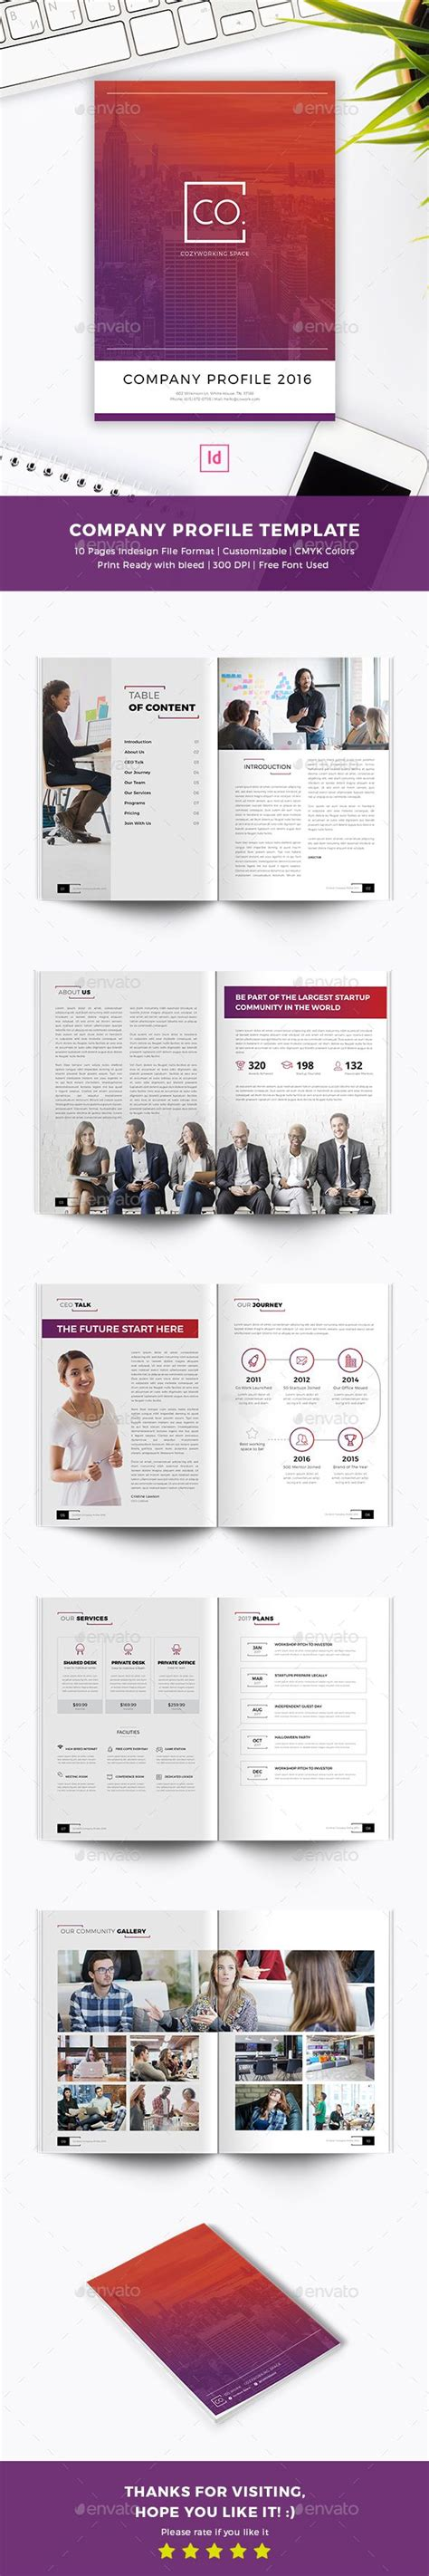 cowork company profile indesign template company profile